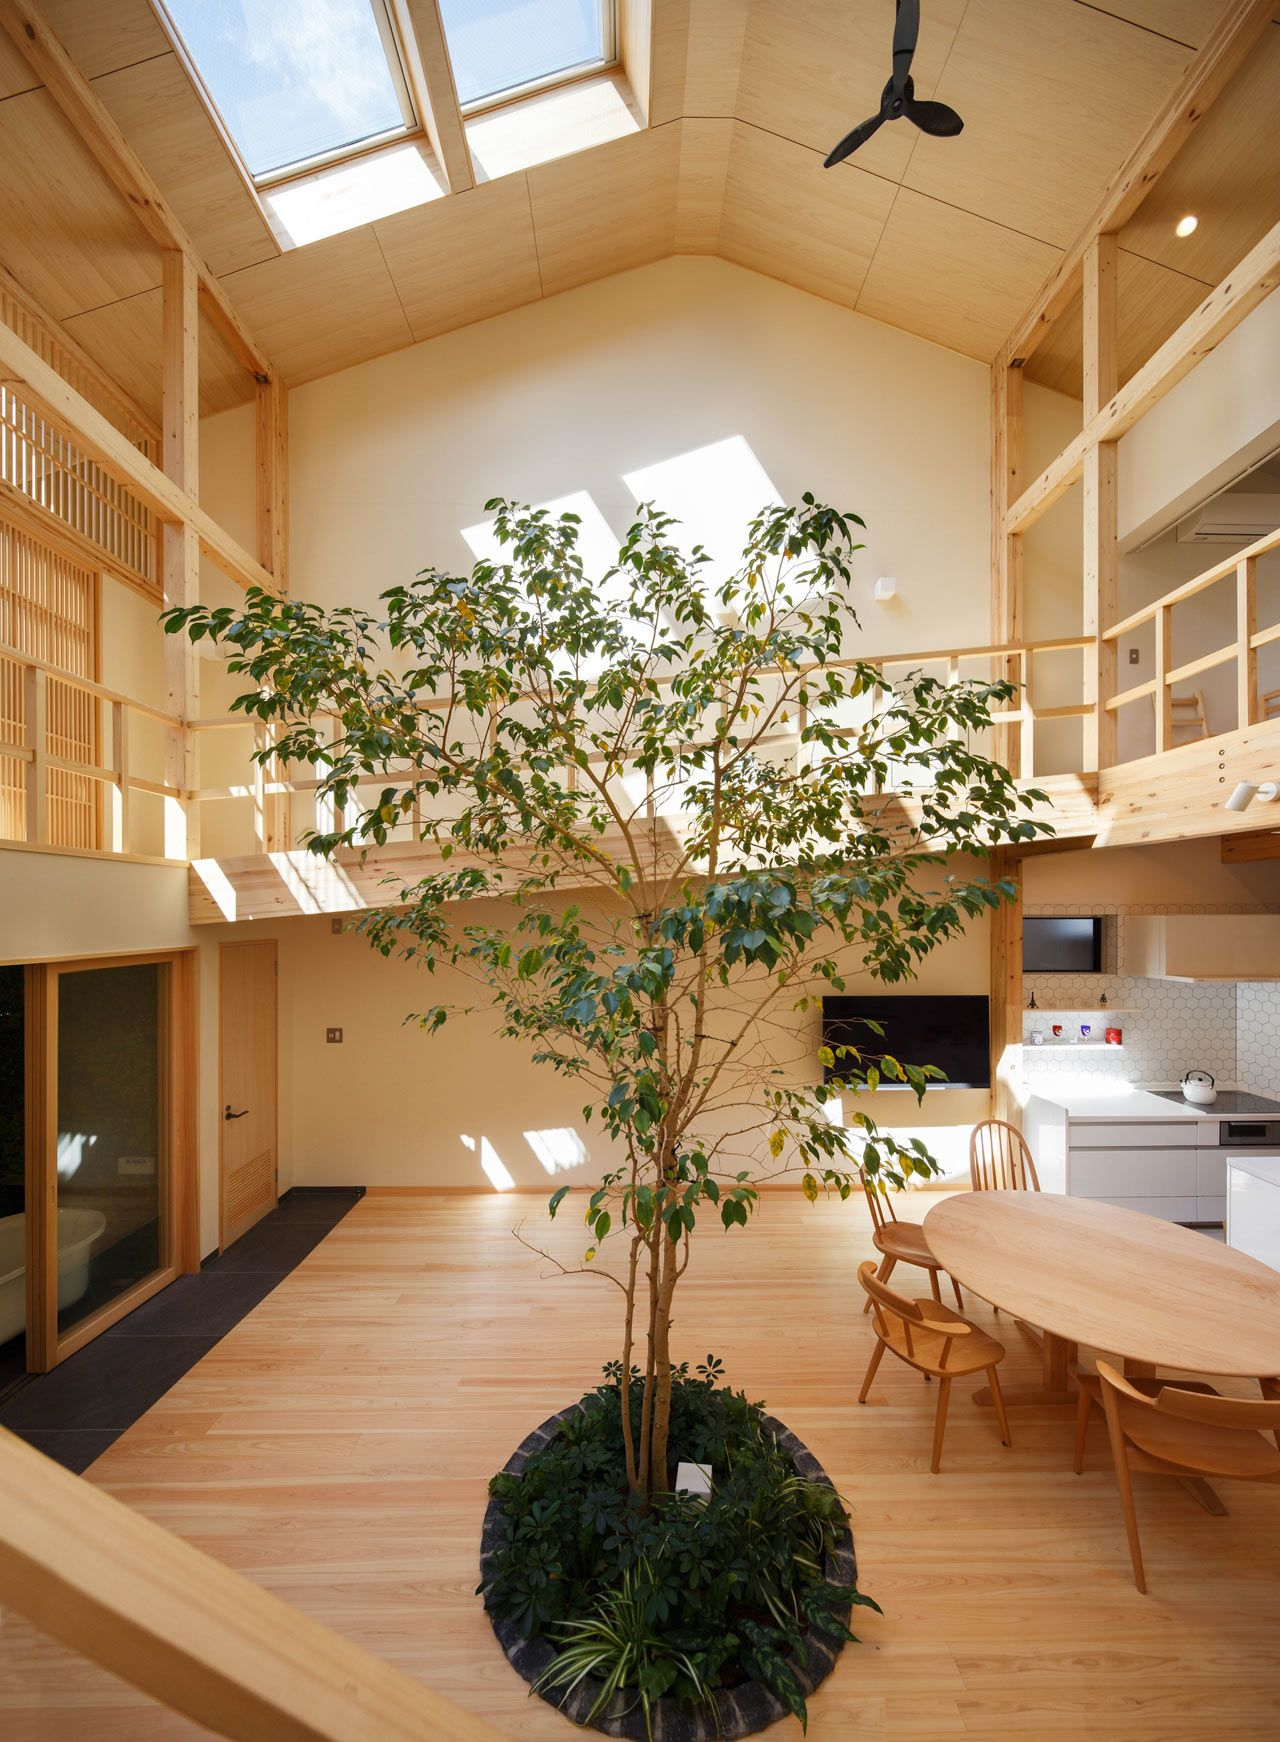 A Family House in Kyoto with a Tree Growing in the